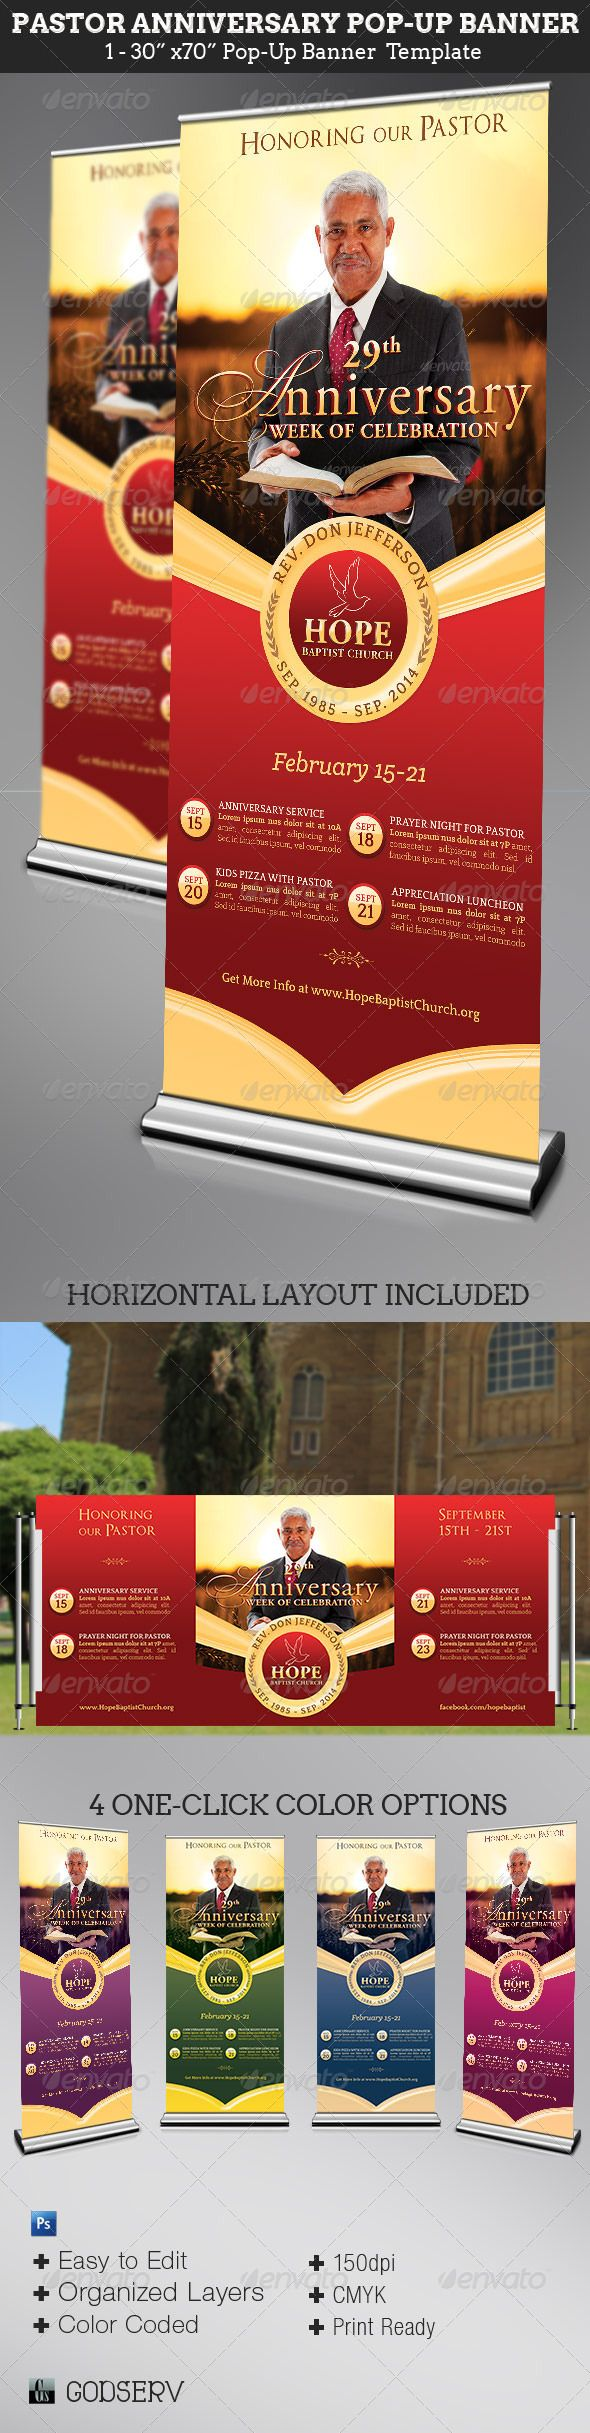 Pastor Anniversary Pop-Up Banner Template